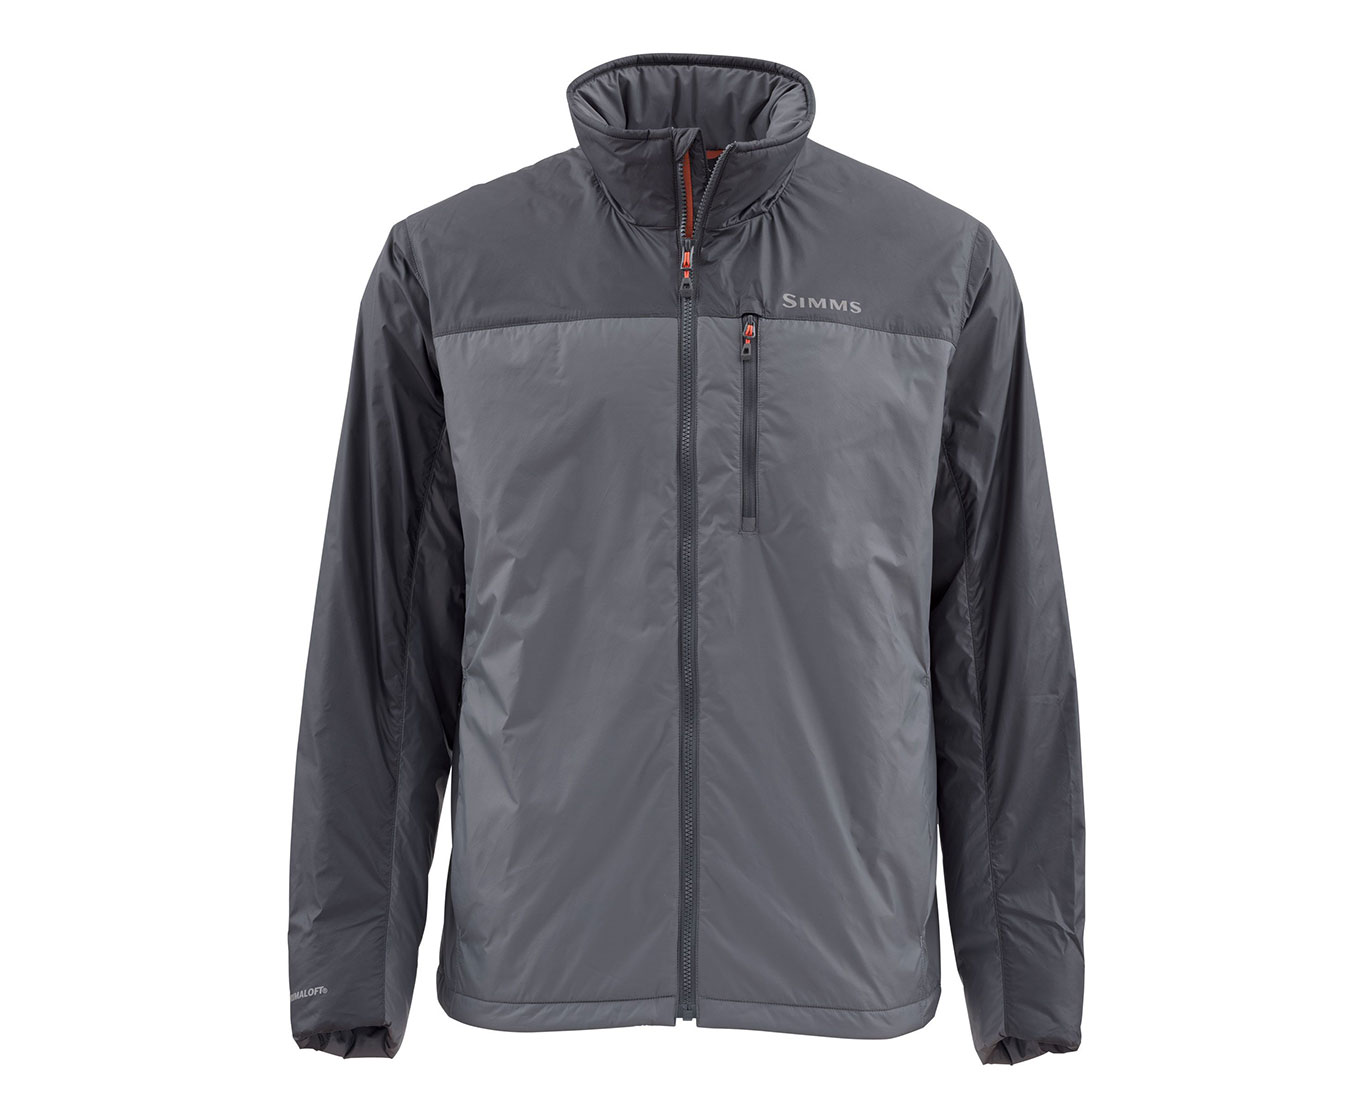 Simms Midstream Insulated Jacket - Anvil_1.jpg